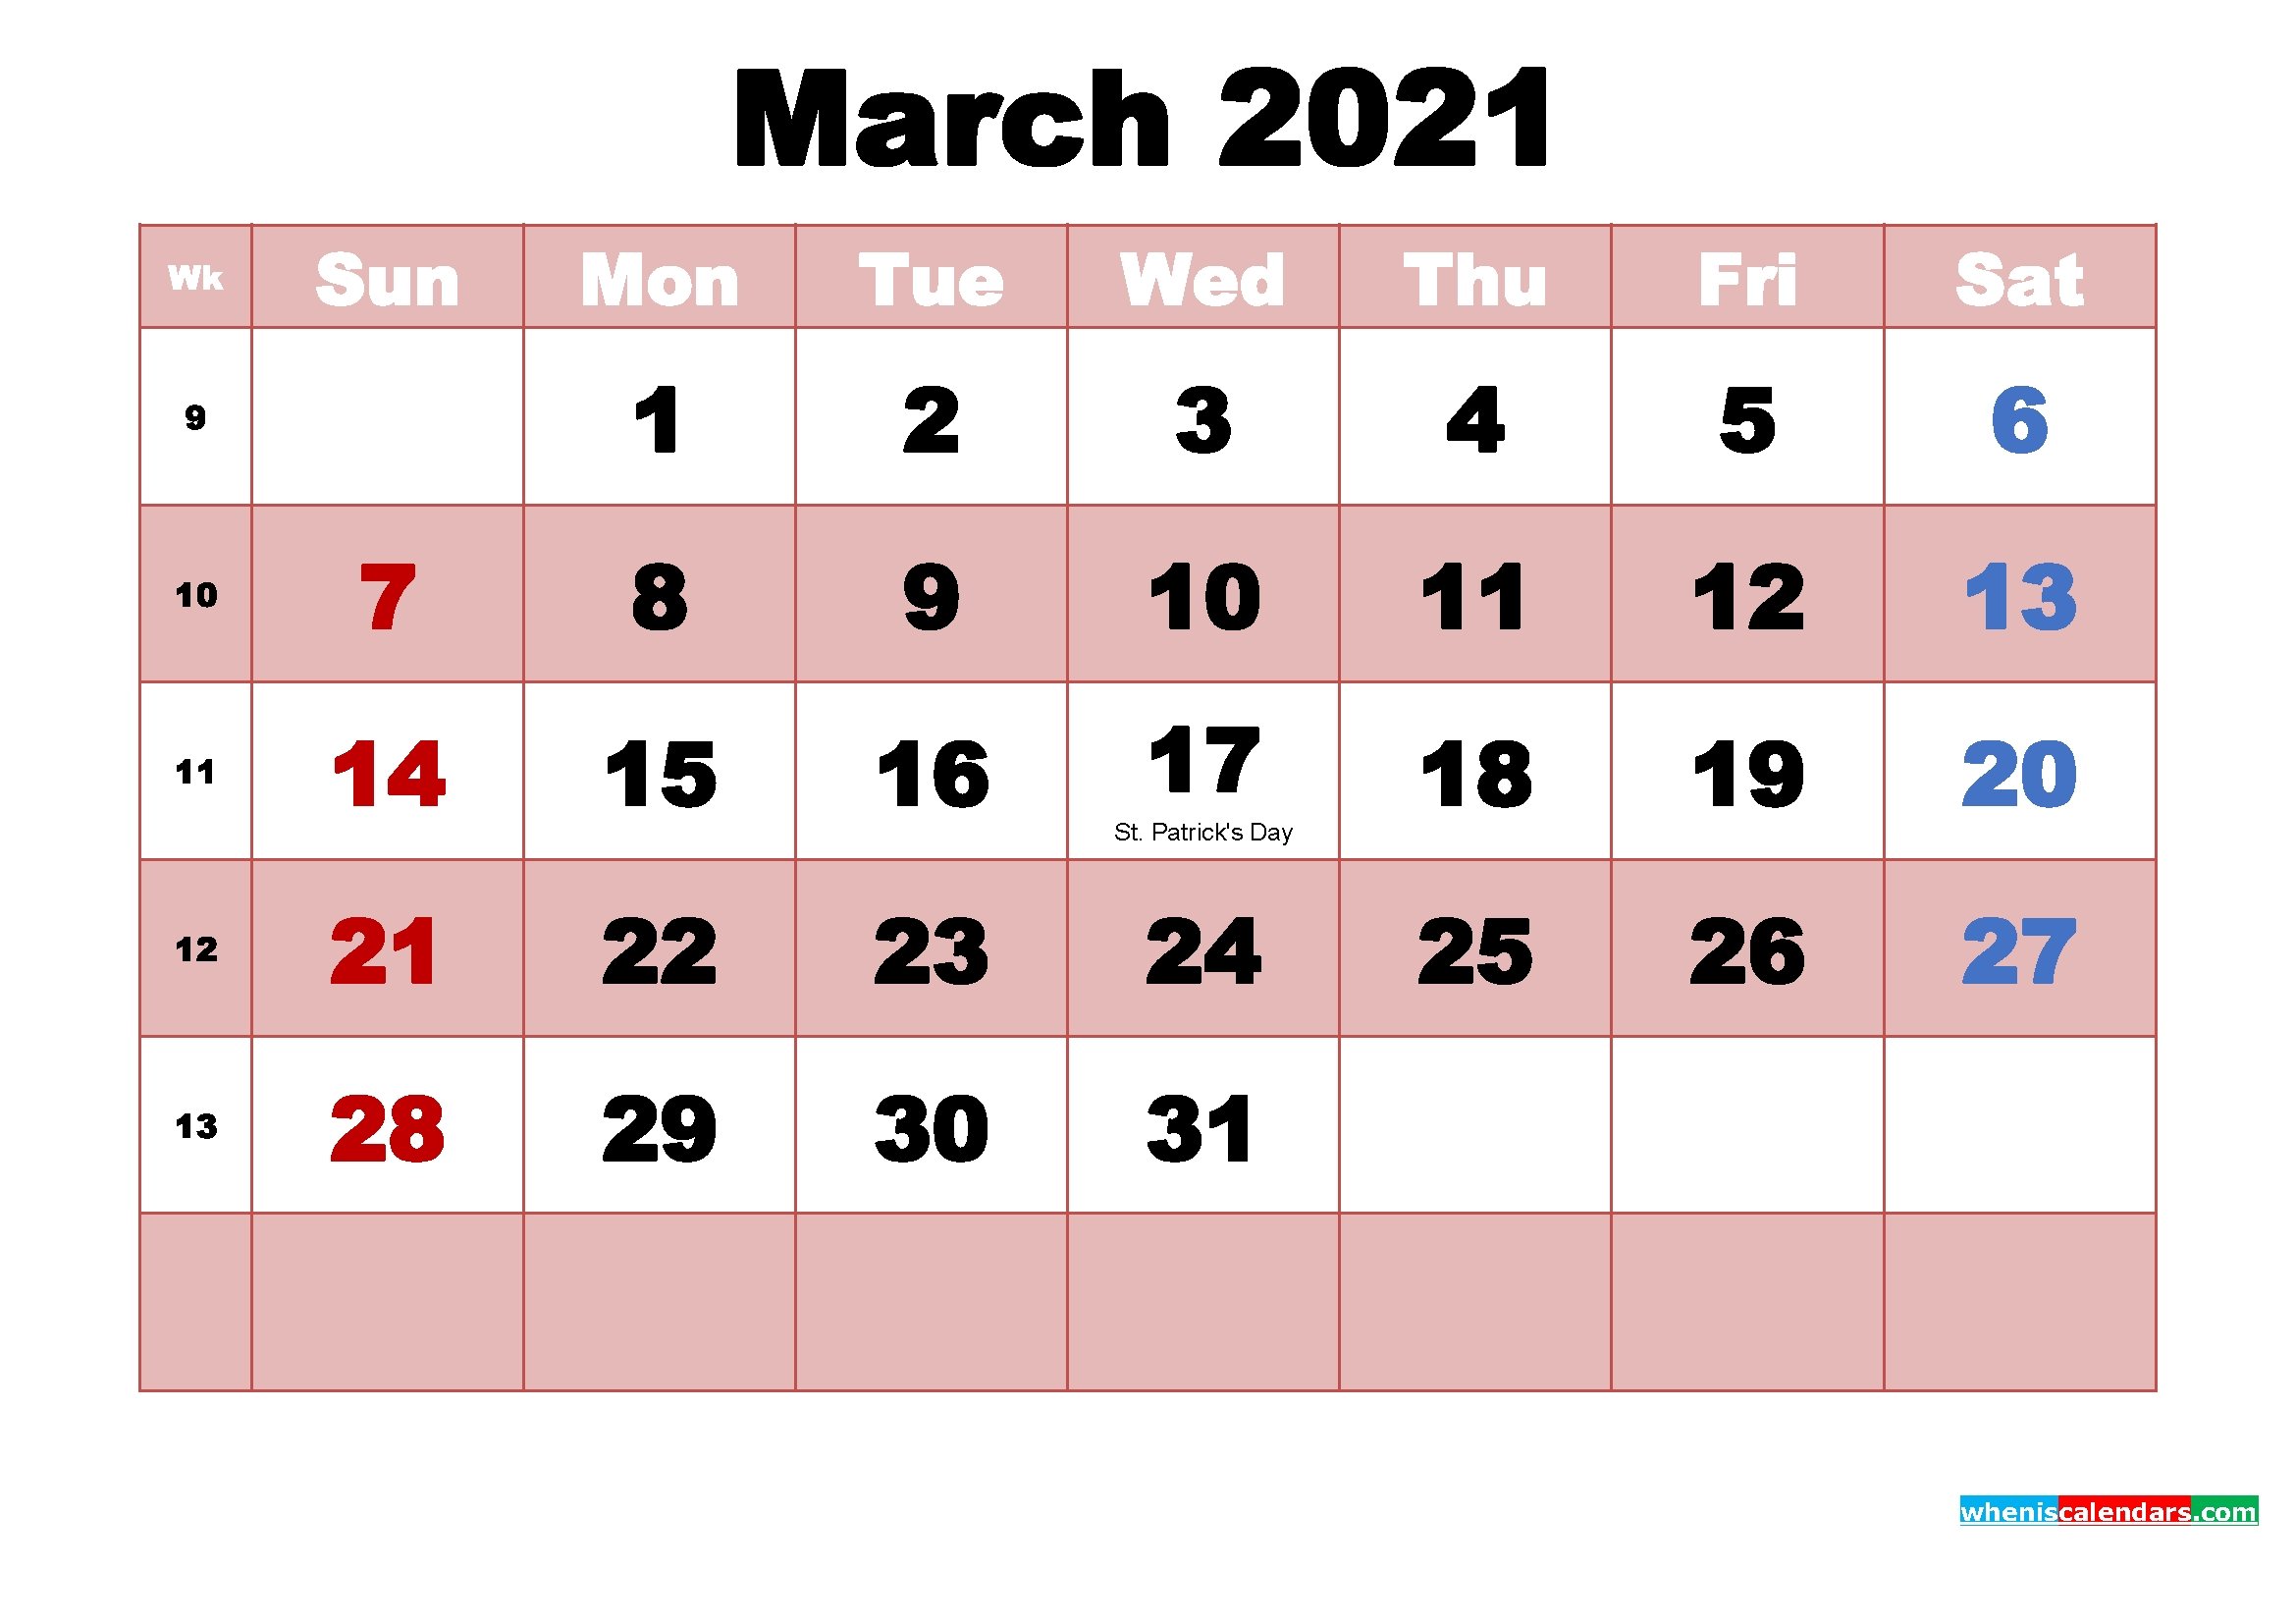 March 2021 Printable Monthly Calendar With Holidays | Free Printable 2020 Calendar With Holidays with 2021 Monthly Calendar With Holidays Printable Pdf